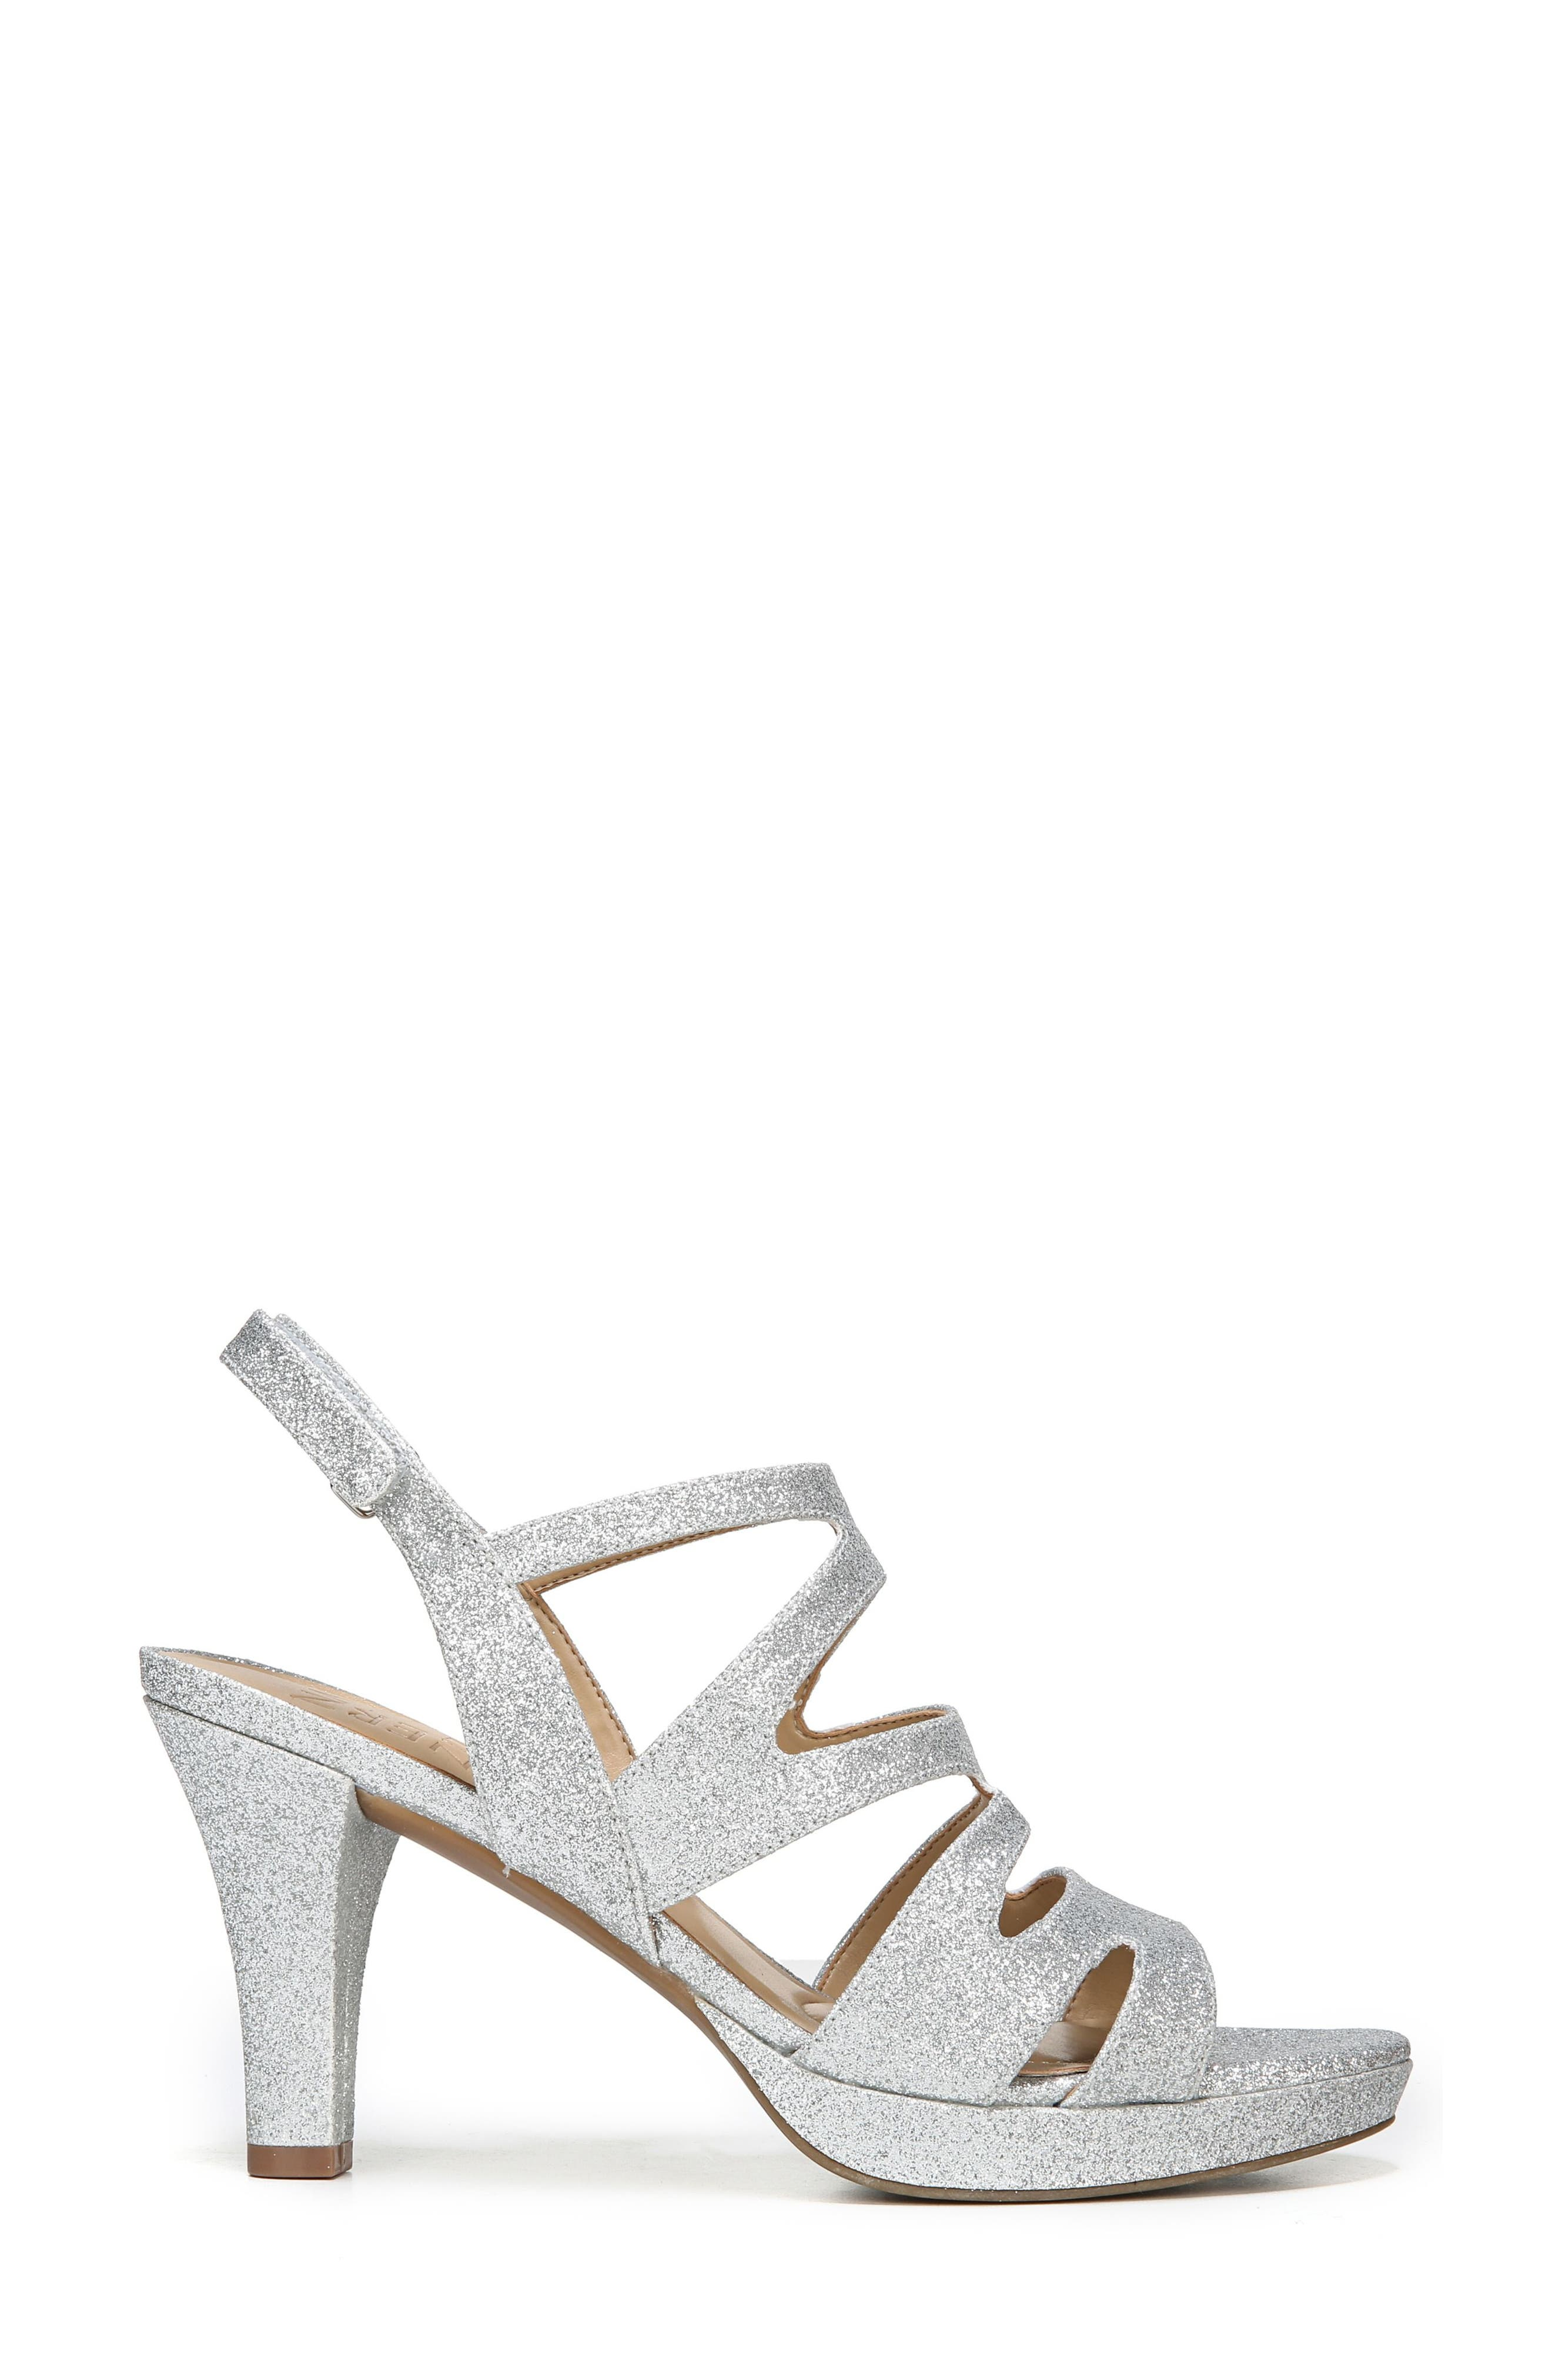 Alternate Image 3  - Naturalizer 'Pressley' Slingback Platform Sandal (Women)